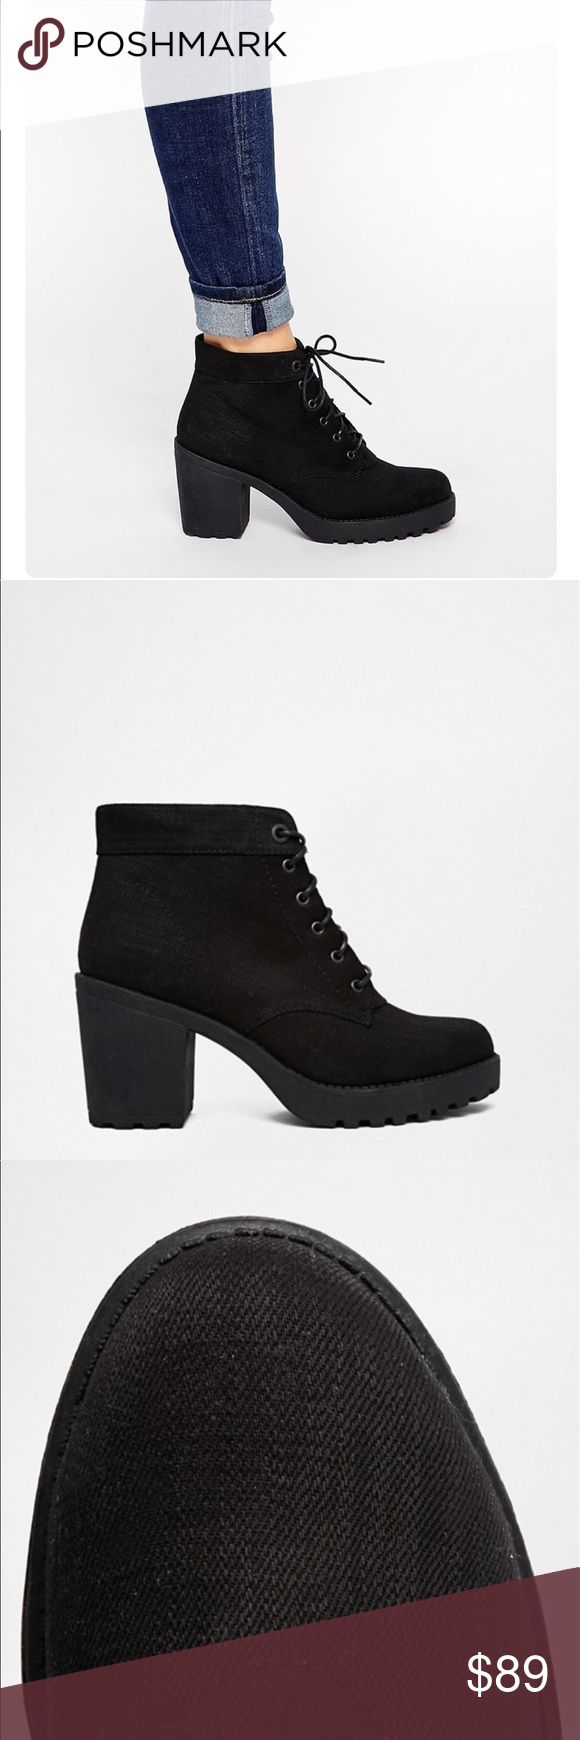 ASOS Vagabond Boot Black bootie from ASOS. Worn once. Excellent condition. Sold out online. ASOS Shoes Ankle Boots & Booties